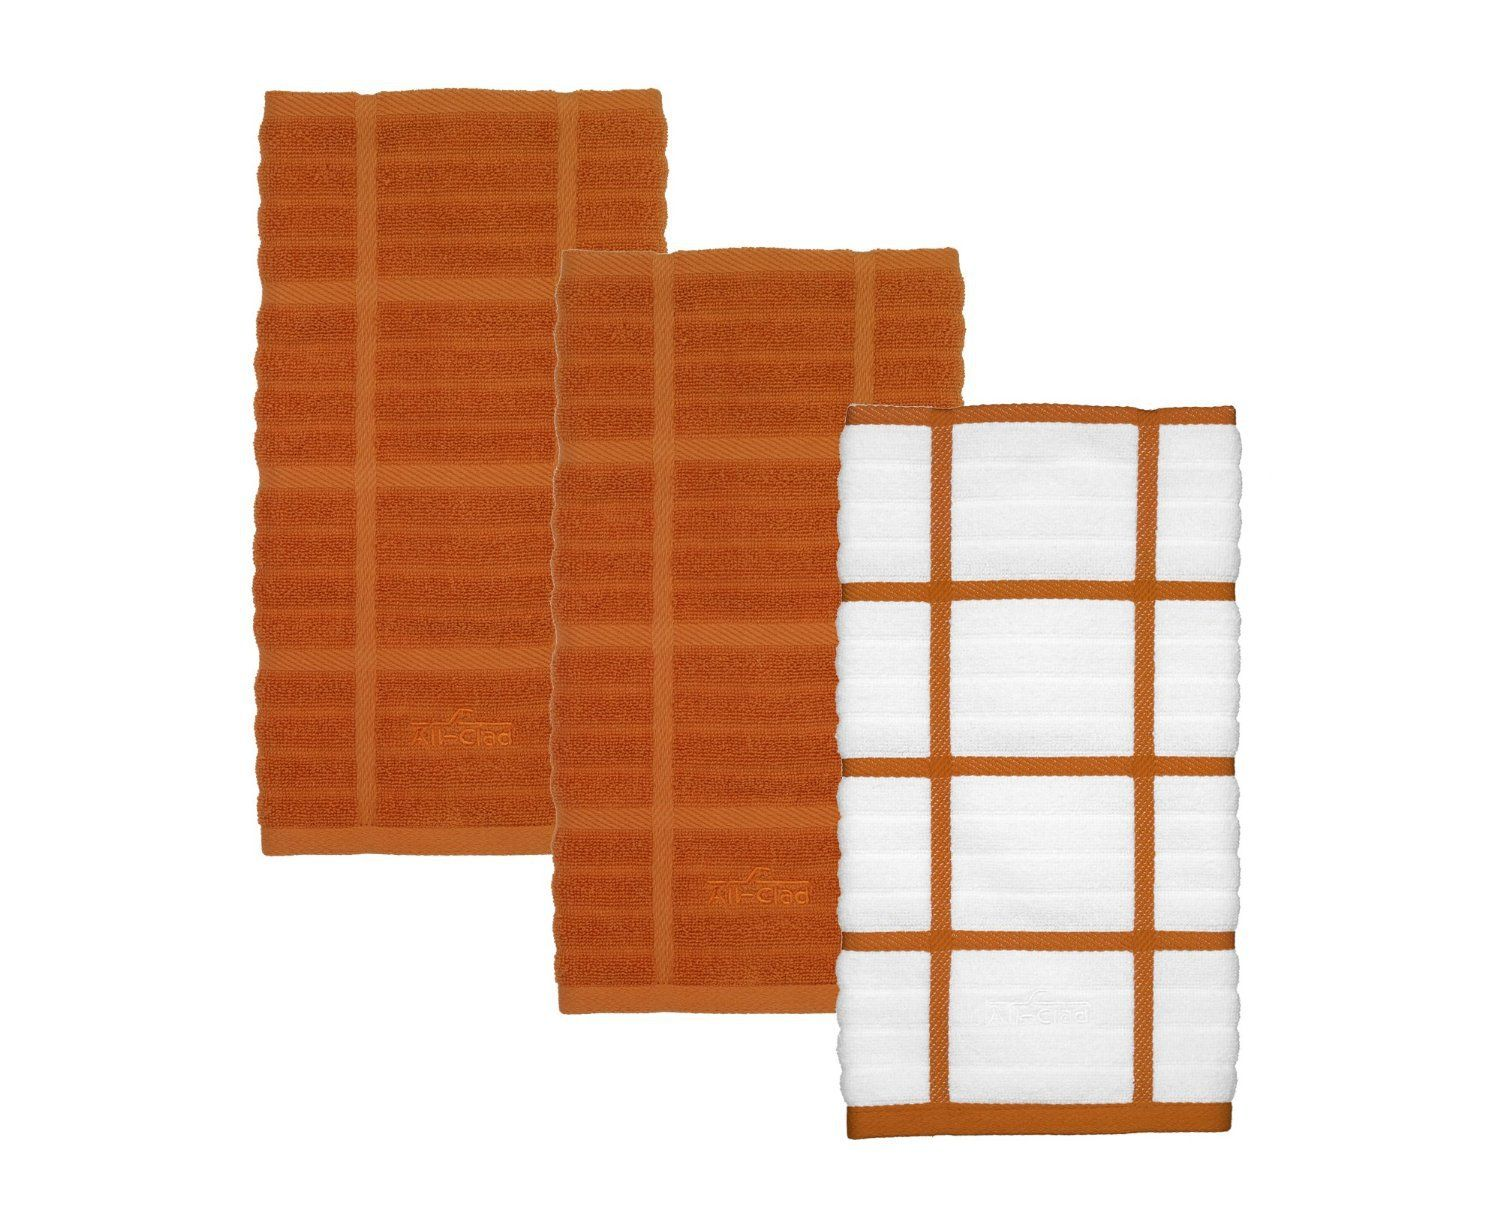 ALL-CLAD 100% Combed Cotton 3 PC Woven Solid & Check Kitchen Towel Set Tangerine $19.99 SHIPPING IS FREE TO YOUR DOOR! AromaCulinary.Com